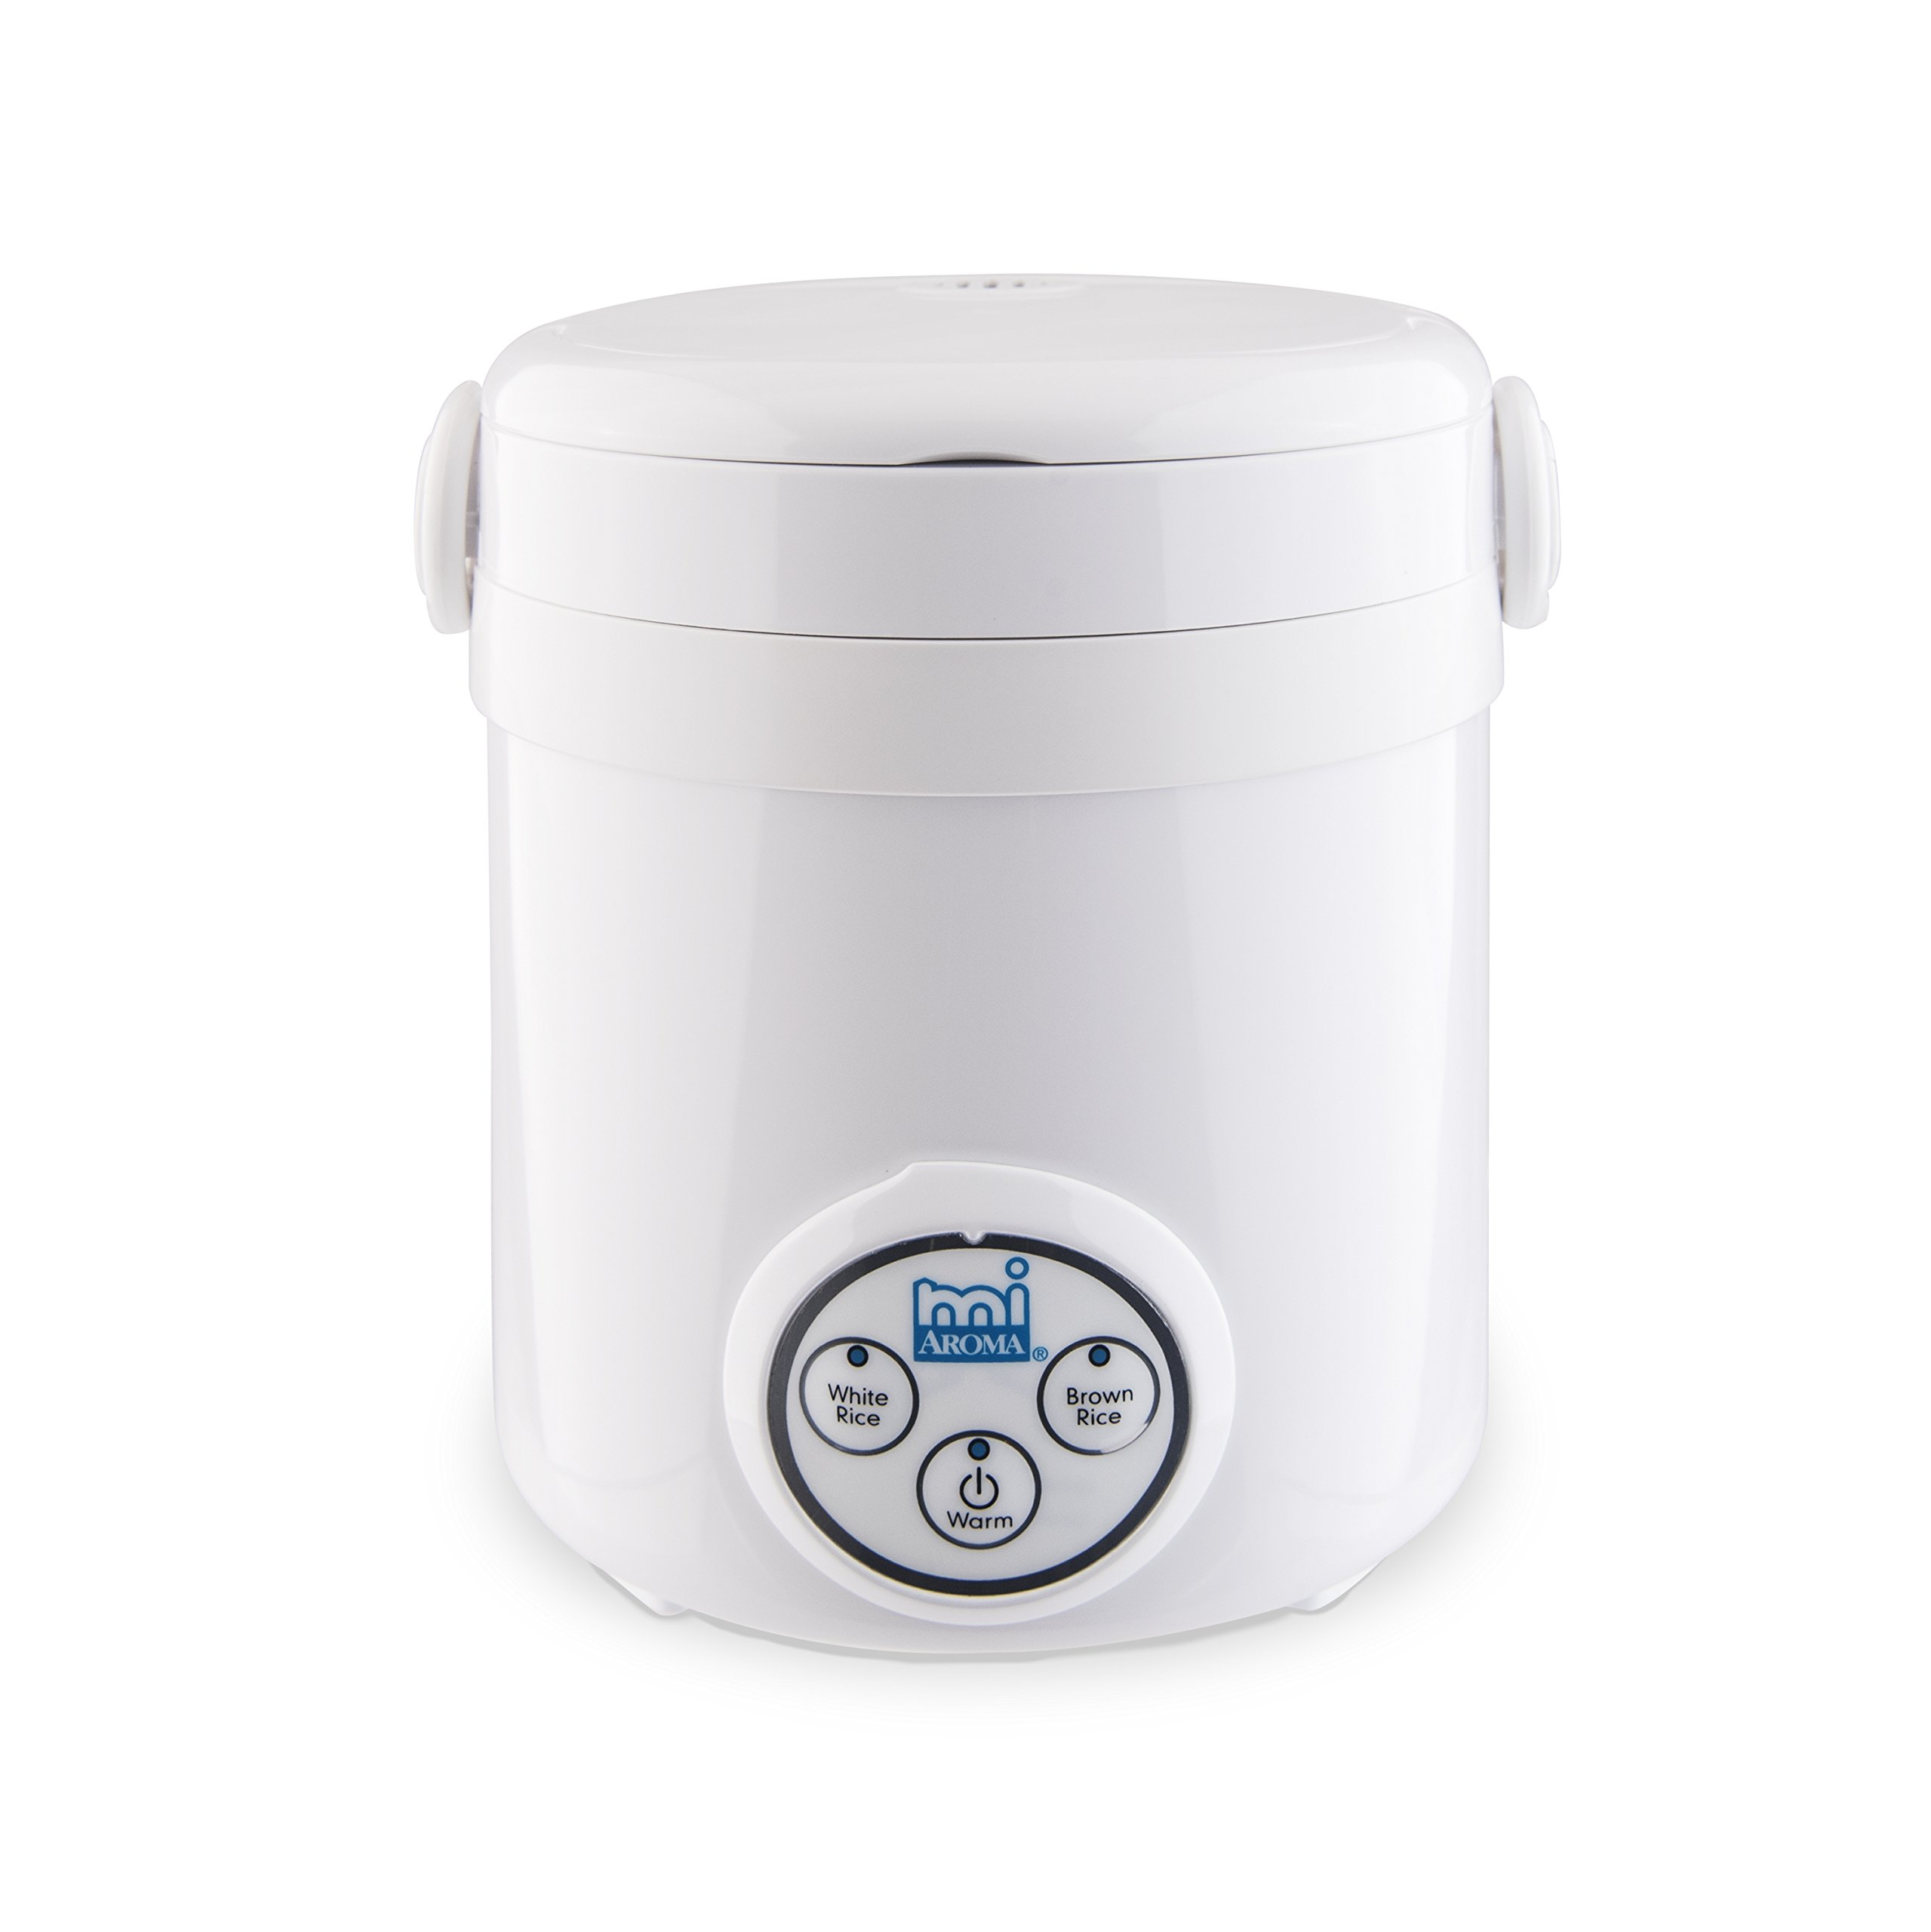 Aroma Housewares Mi 3-Cup (Cooked) (1.5-Cup UNCOOKED) Digital Cool Touch Mini Rice Cooker by Aroma Housewares